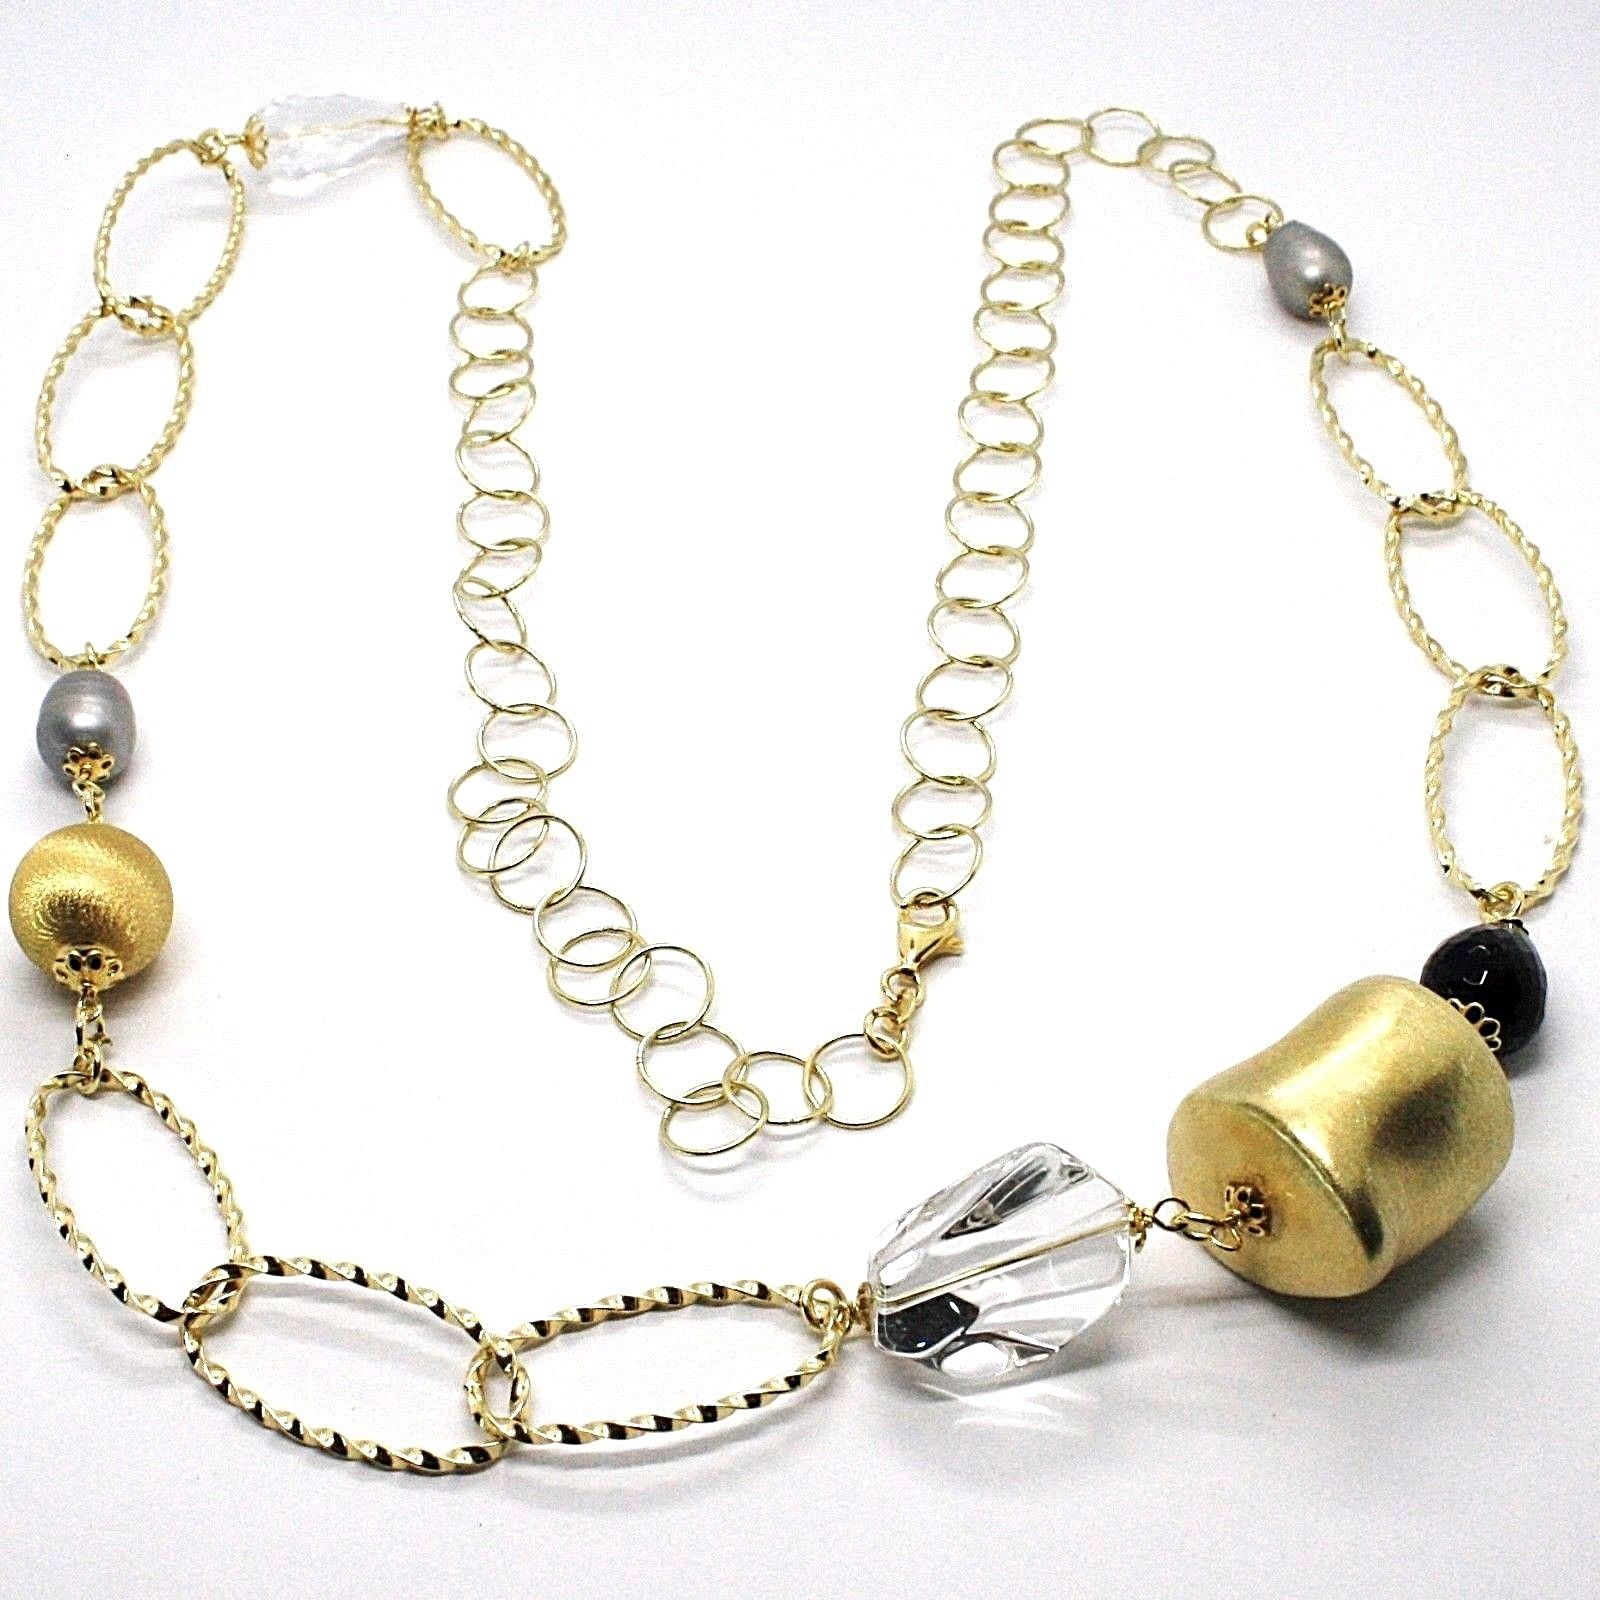 Silver necklace 925, Yellow, ONYX, GRAY PEARLS, Oval Braided, 95 cm